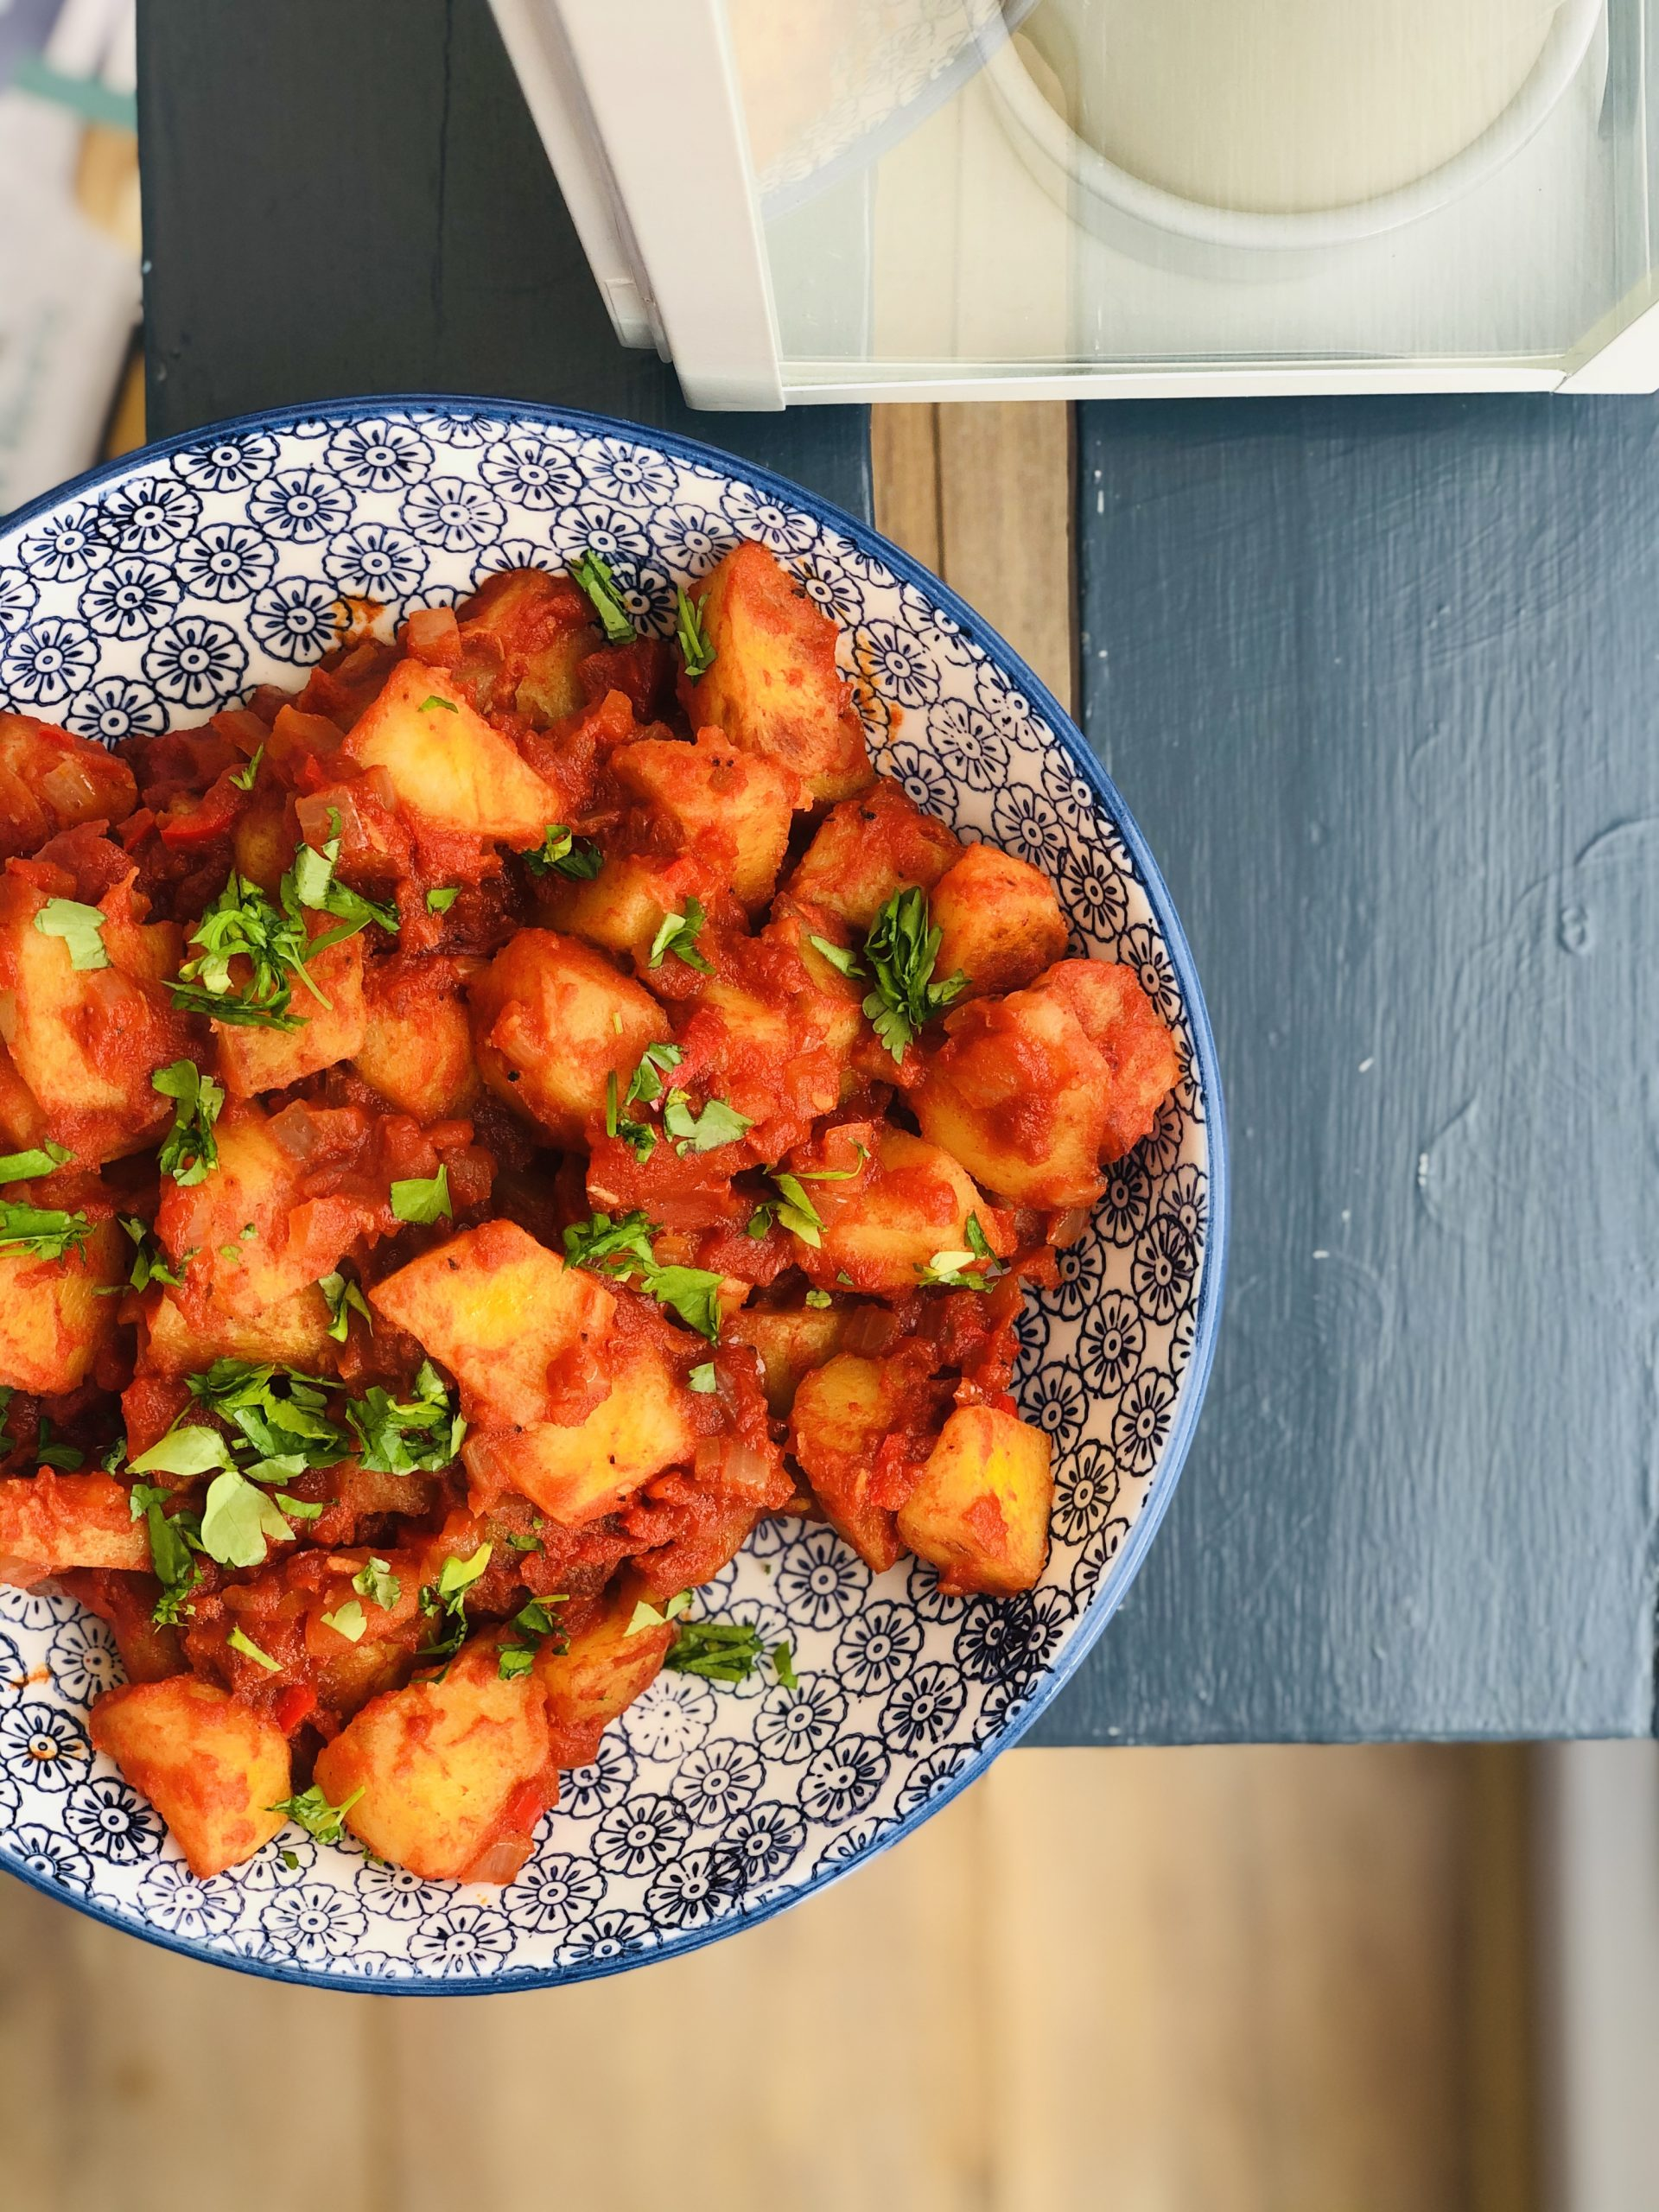 homemade patatas bravas in a blue and white bowl on a dark blue wooden table